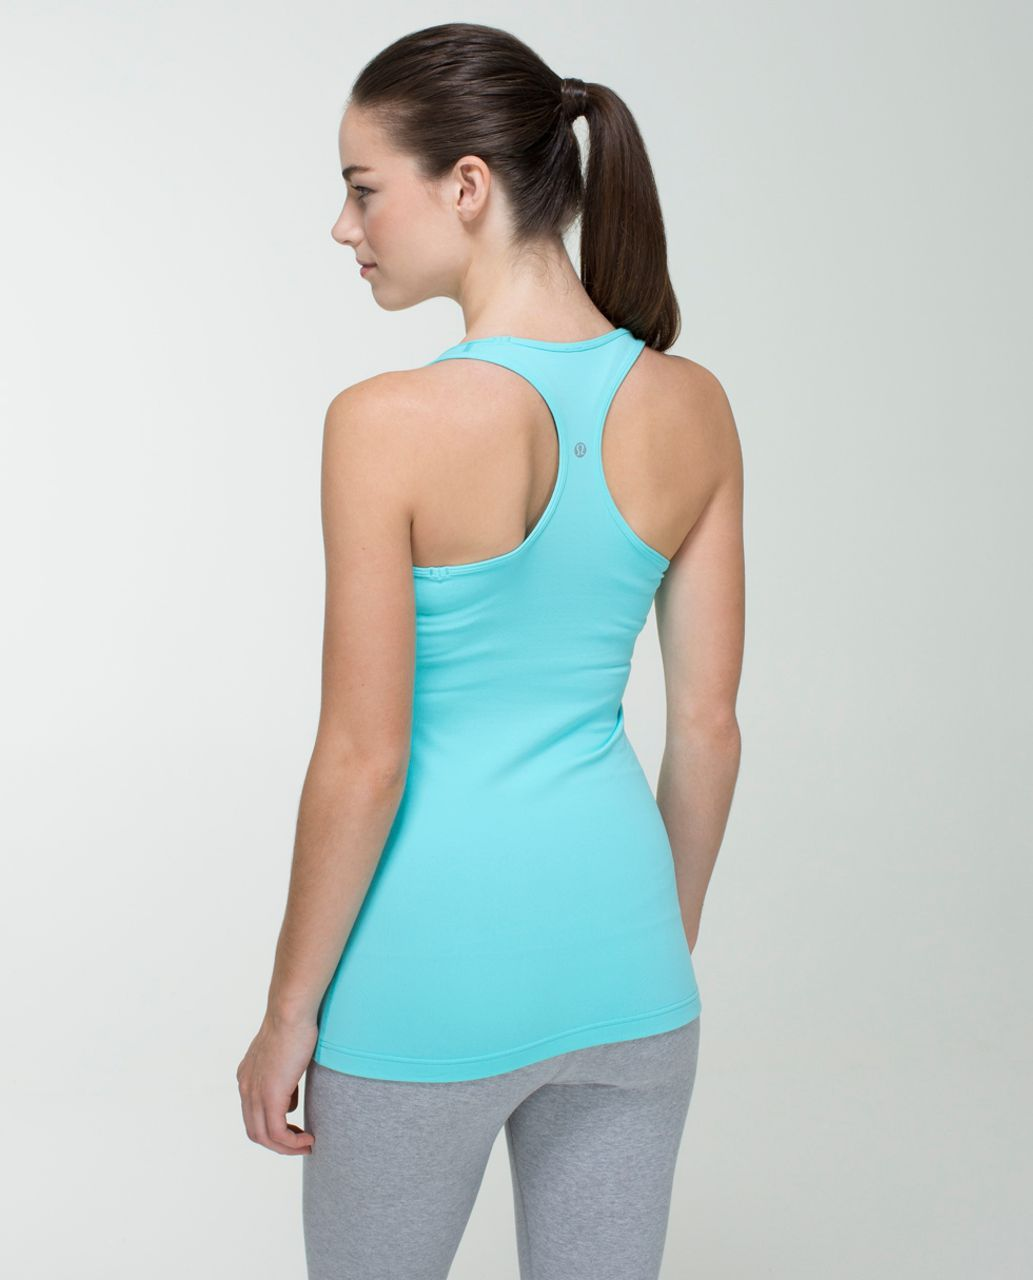 Lululemon Cool Racerback - Angel Blue